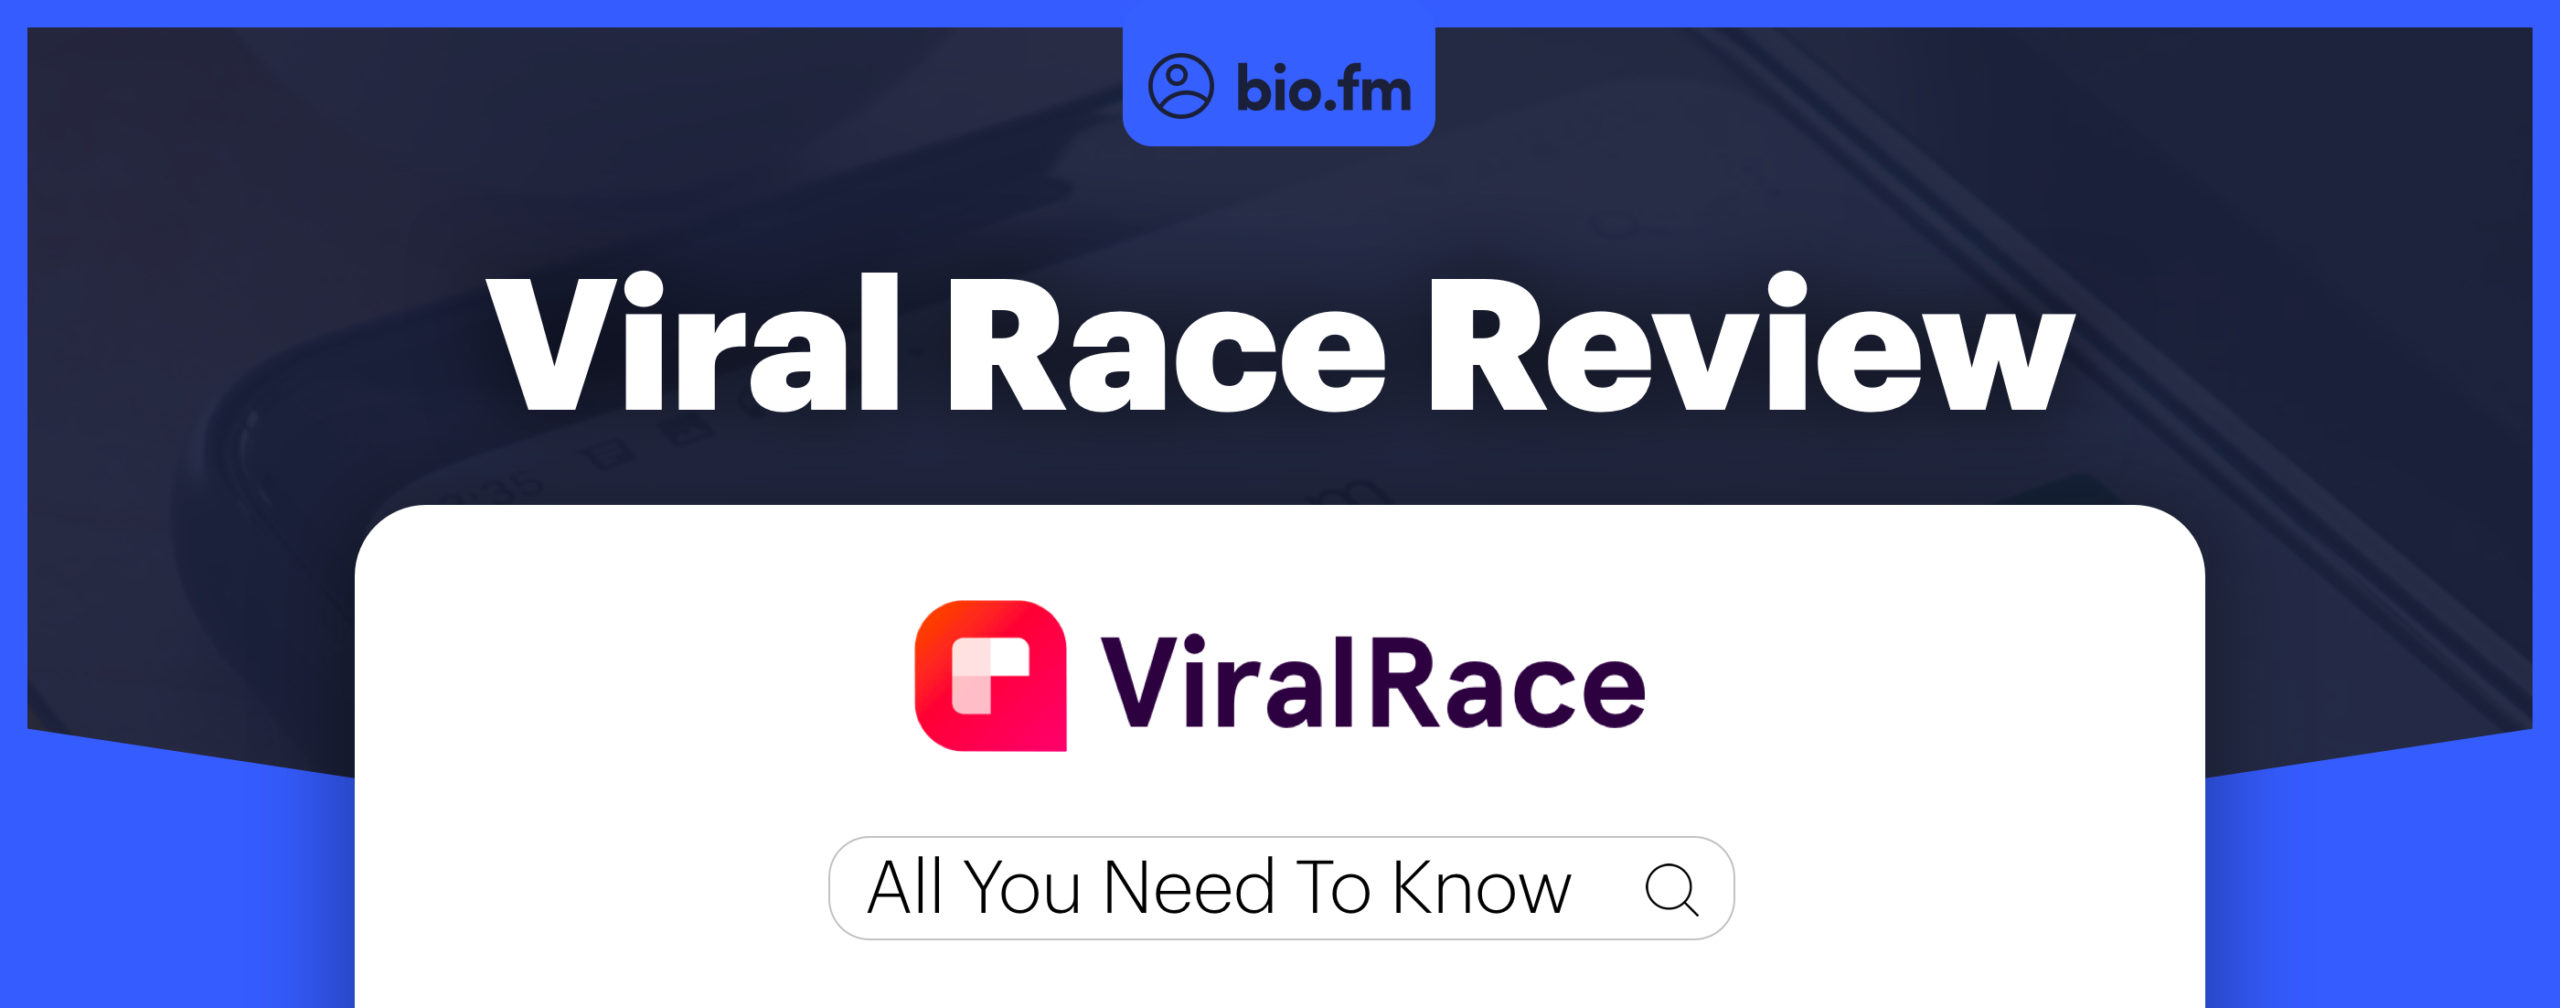 viralrace review featured image